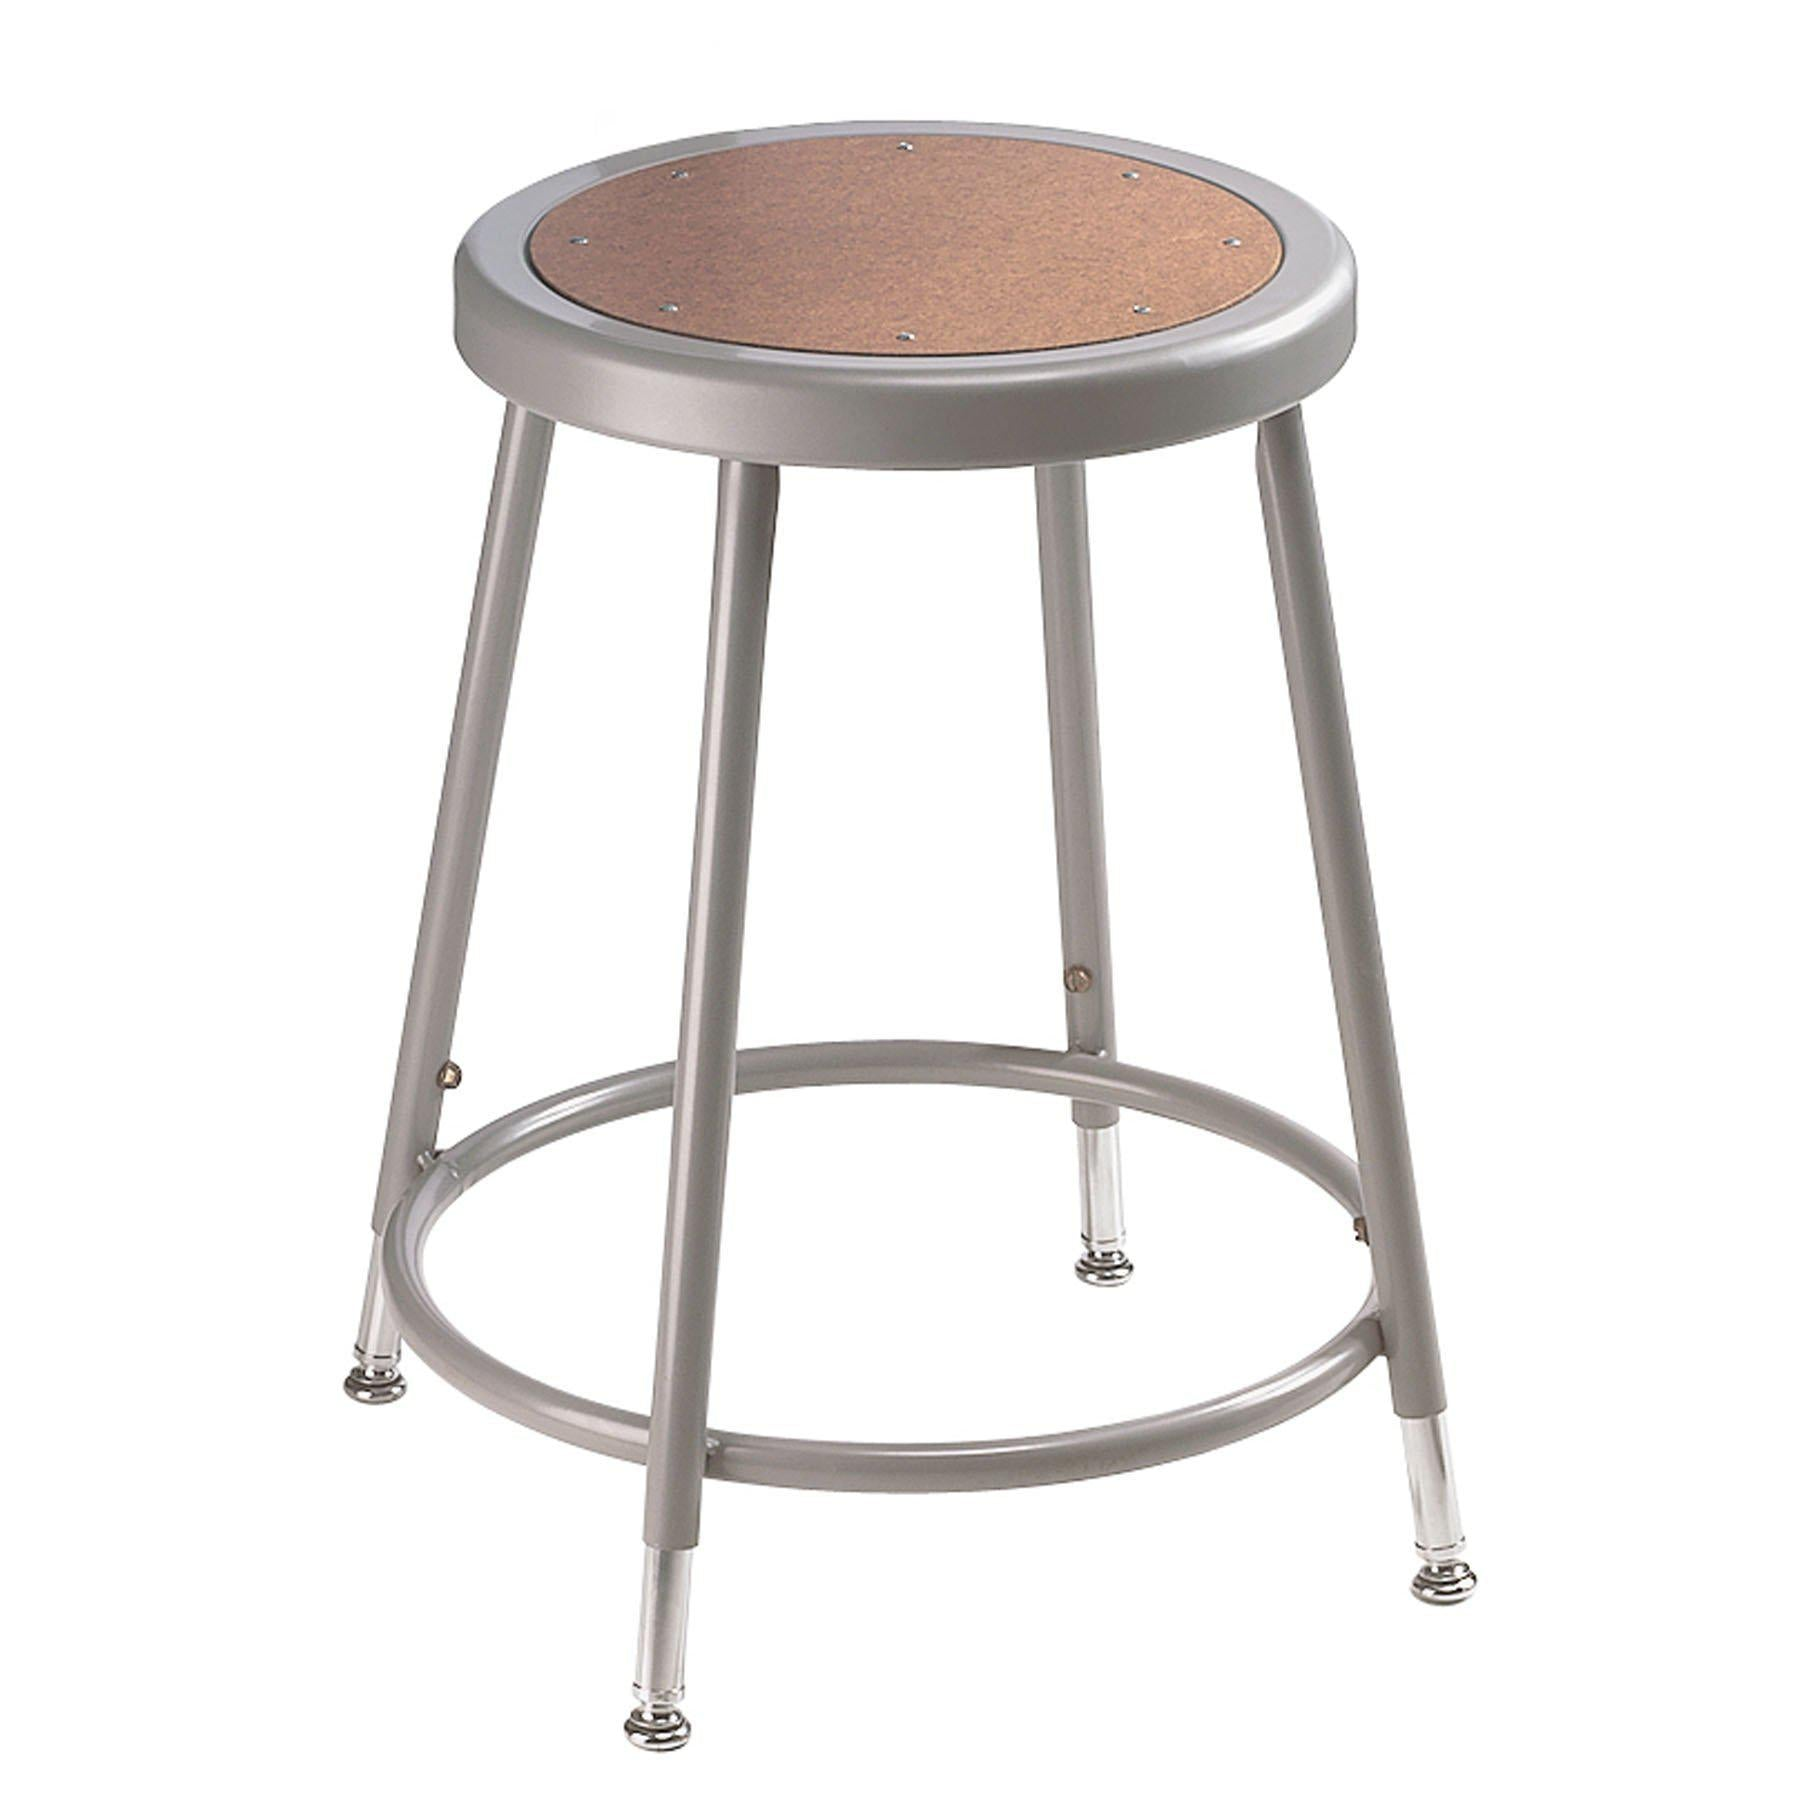 "Height Adjustable Heavy Duty Steel Stool-Stools-Grey-19"" - 27""-"